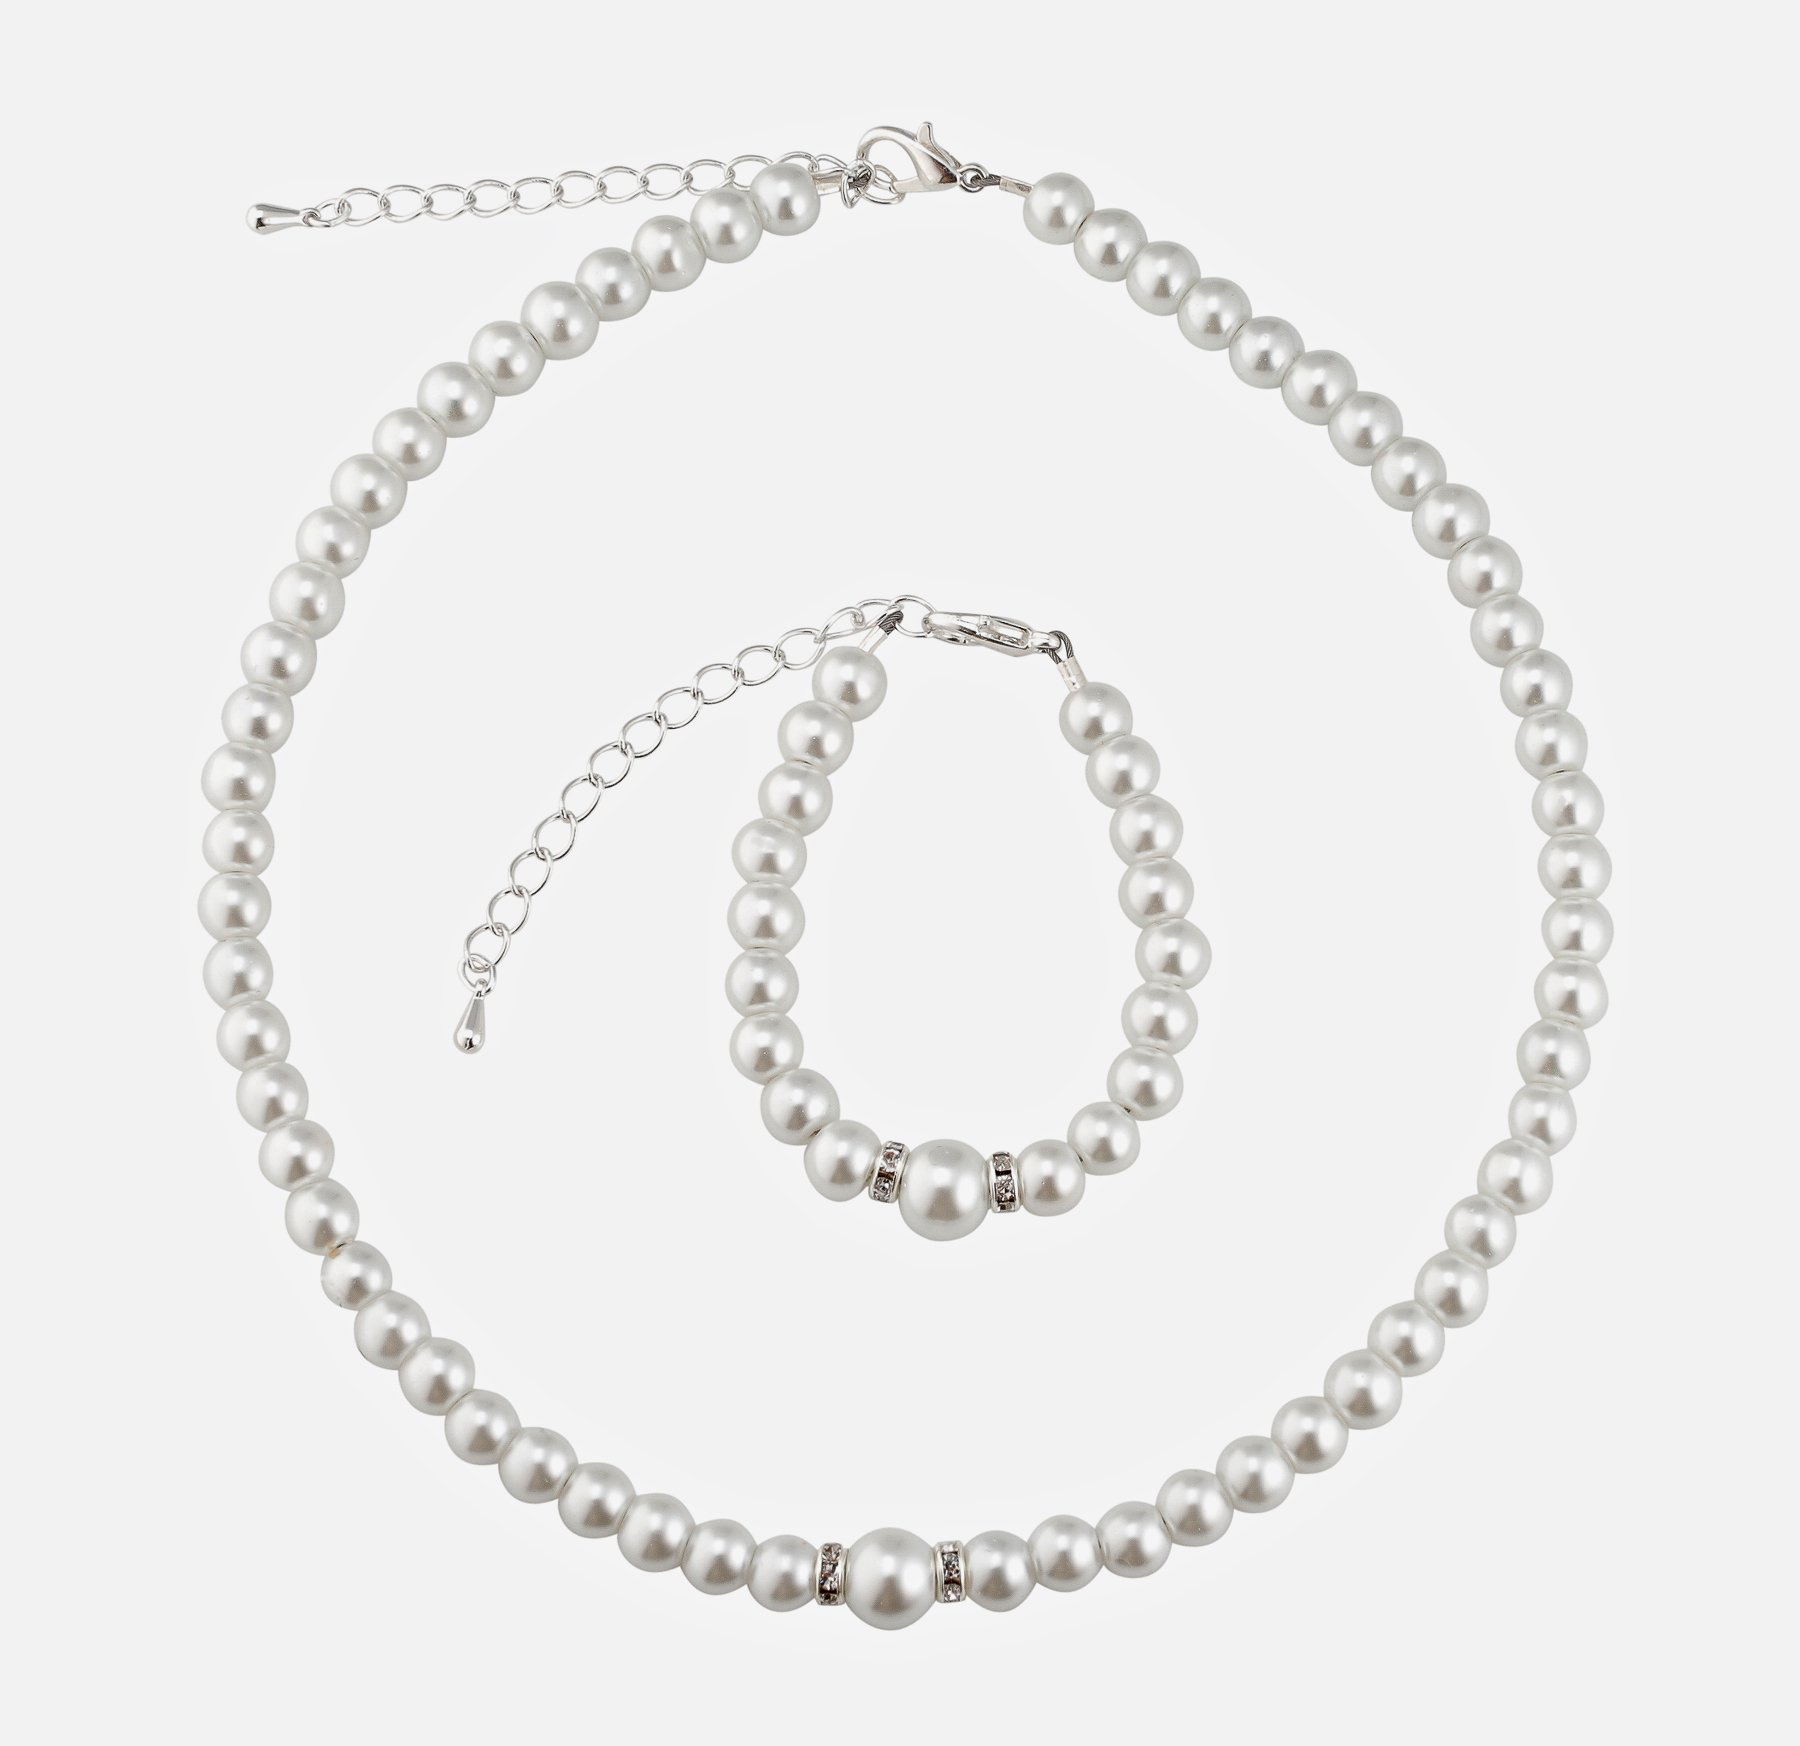 Crystal Dream Elegant White Simulated Pearl Infant Girl Necklace and Bracelet Stylish Gift Set (GS-P-W-M)